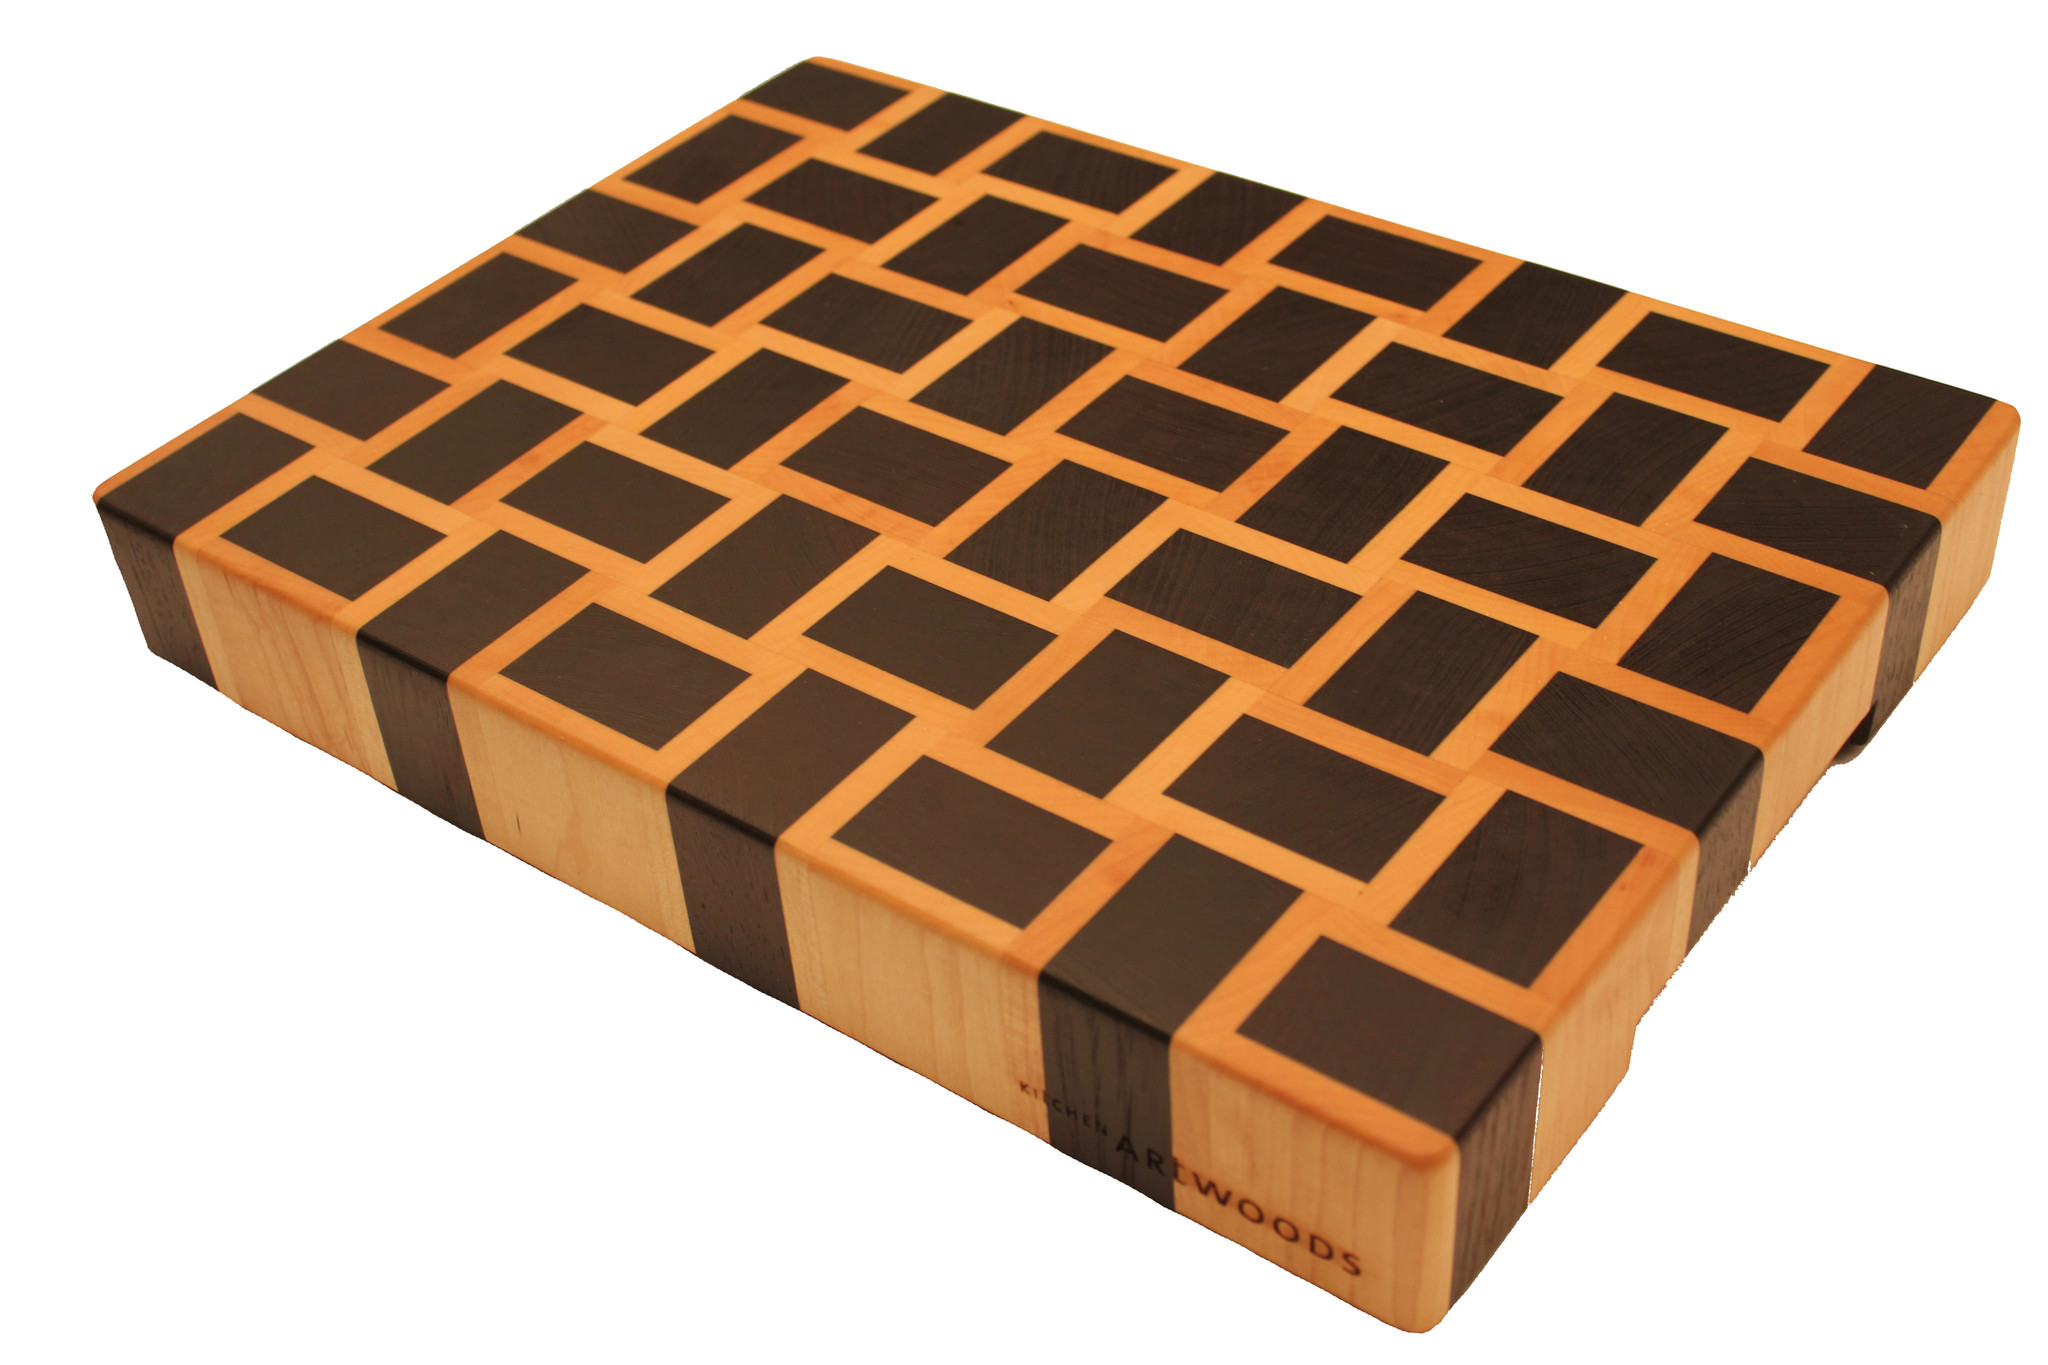 end grain cuttingboard with a woven patern of wenge and hard maple